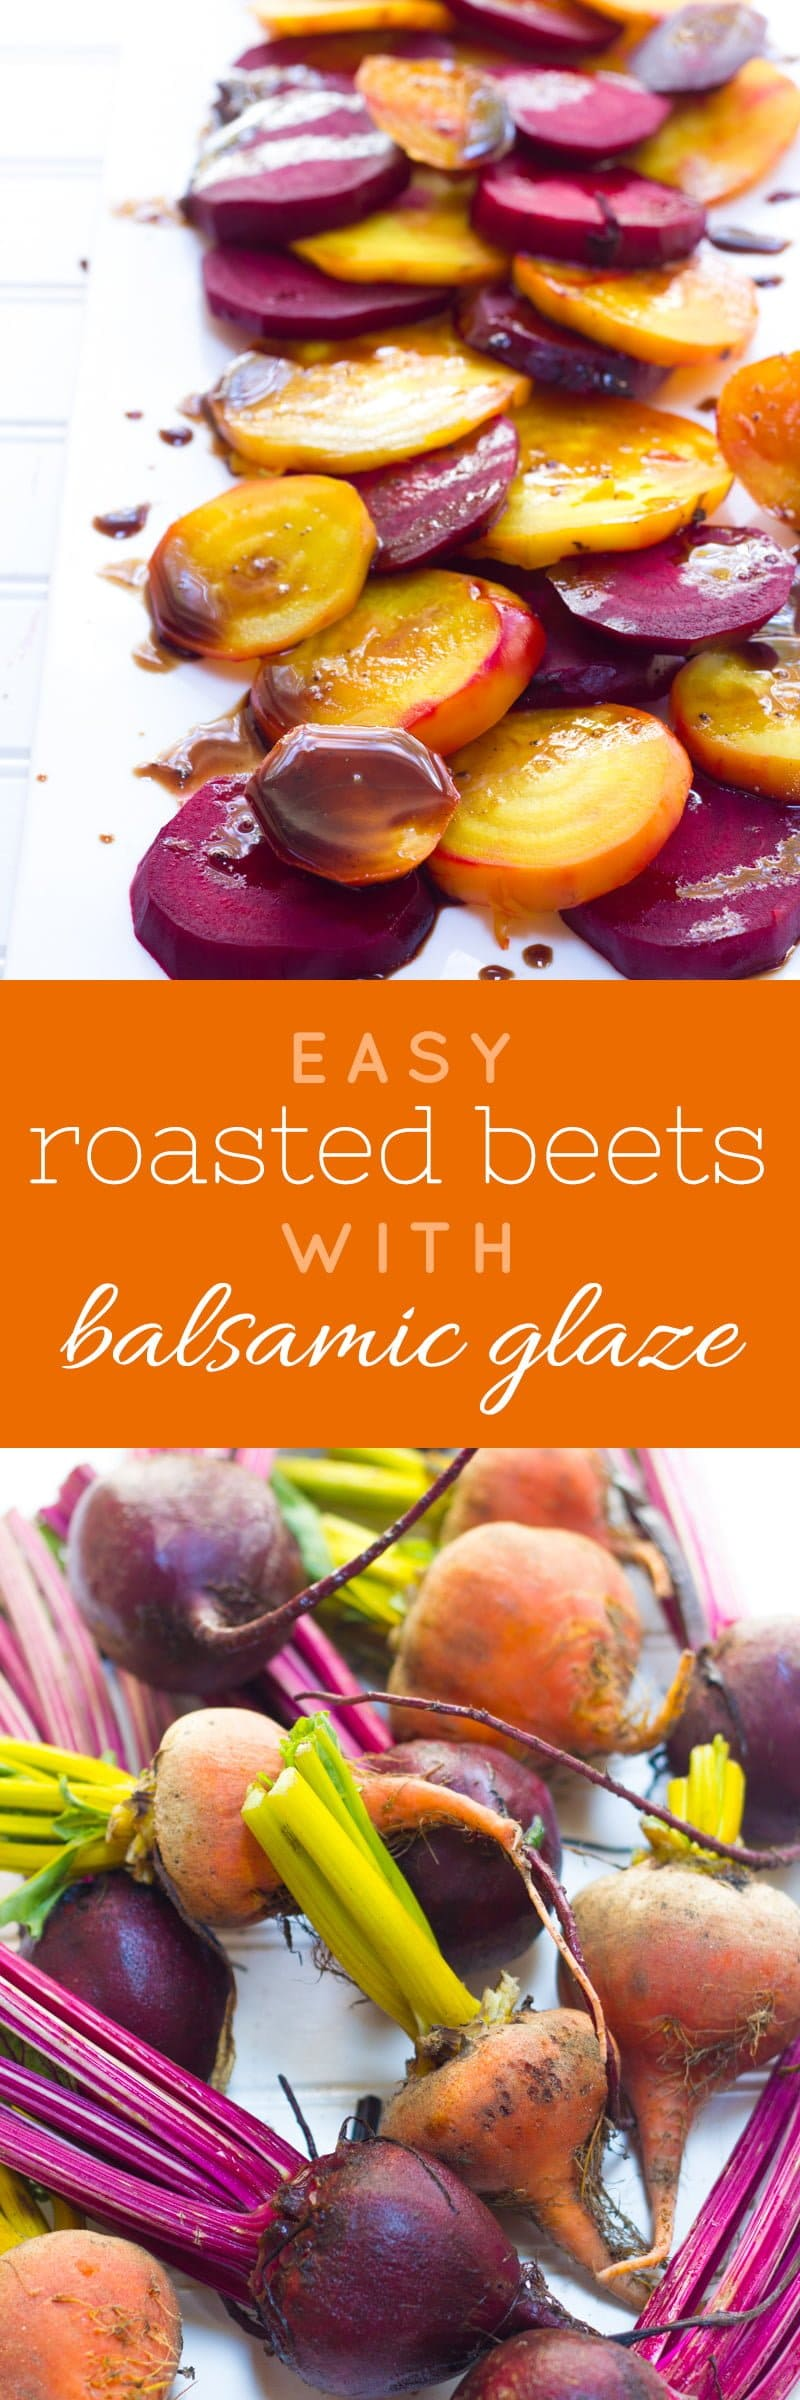 Roasted Beets with Balsamic Glaze - Back to Her Roots